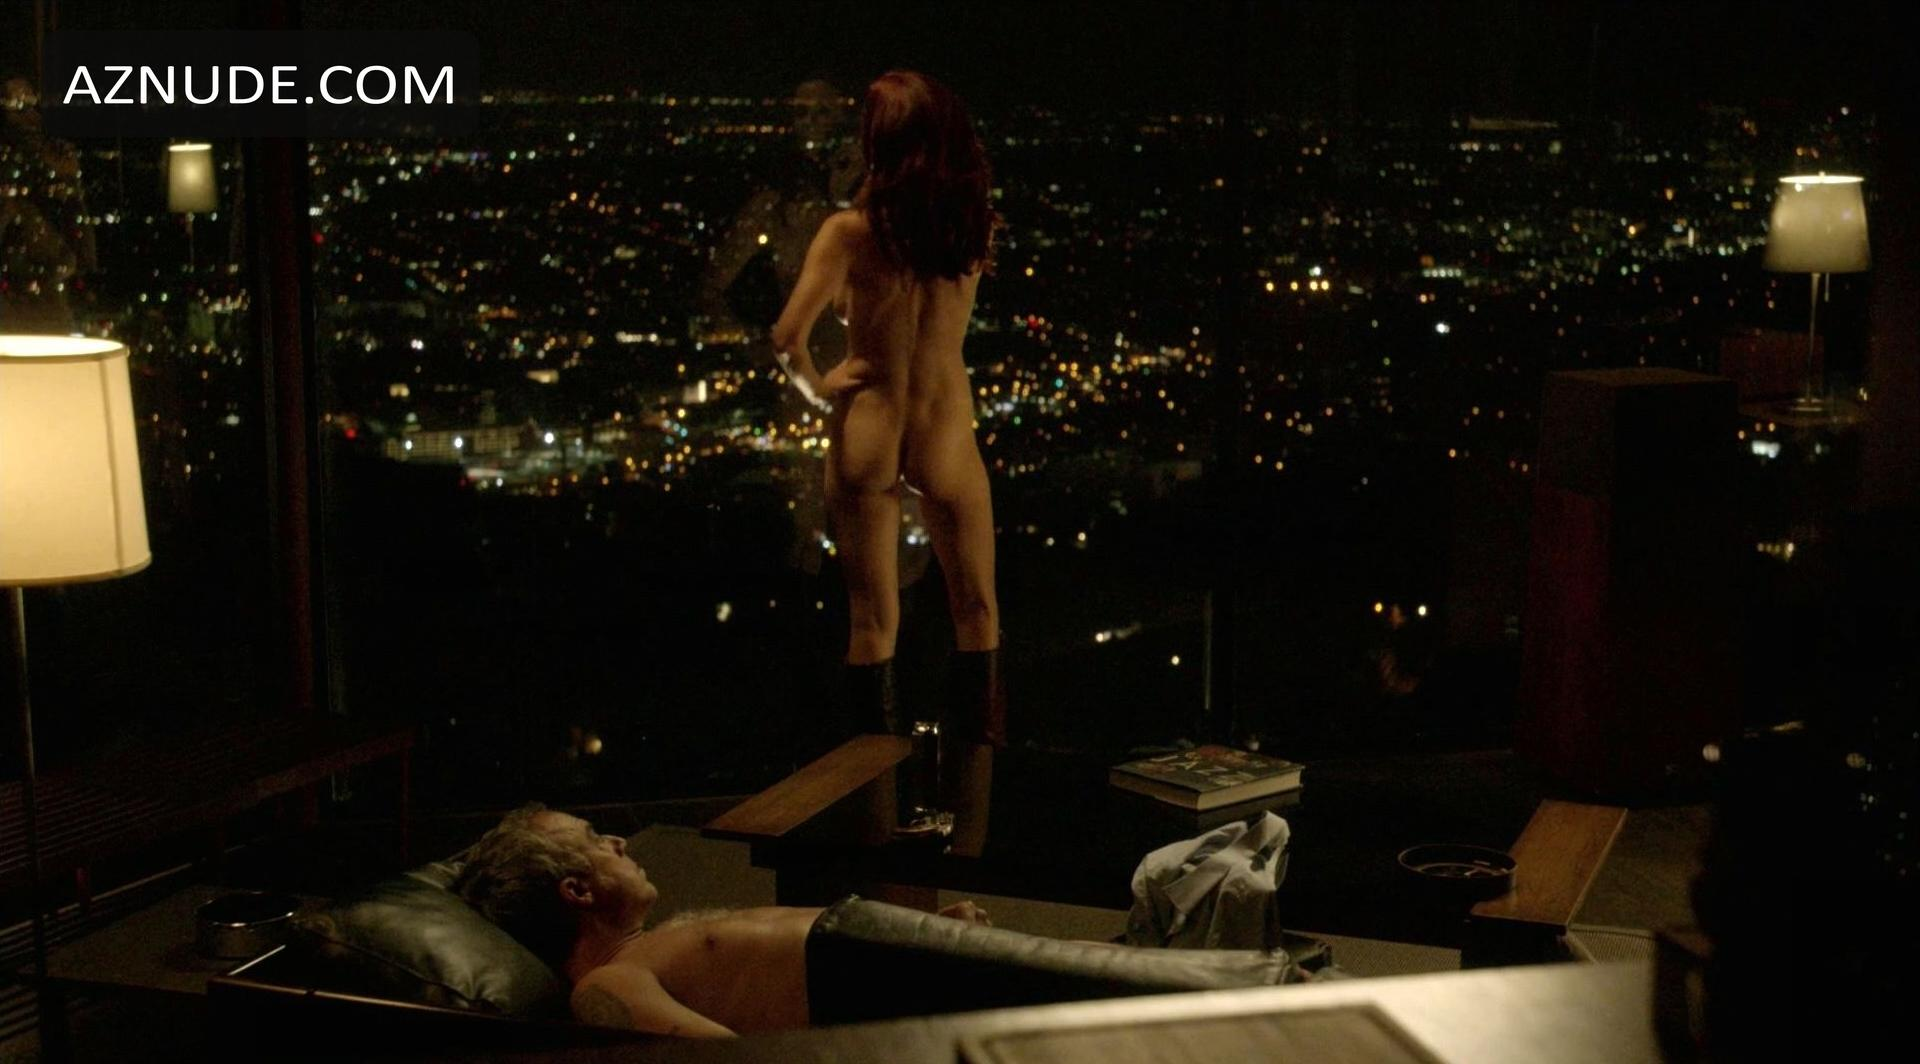 Meredith giangrande jenny lin phedra syndelle in bosch 2 - 3 part 2